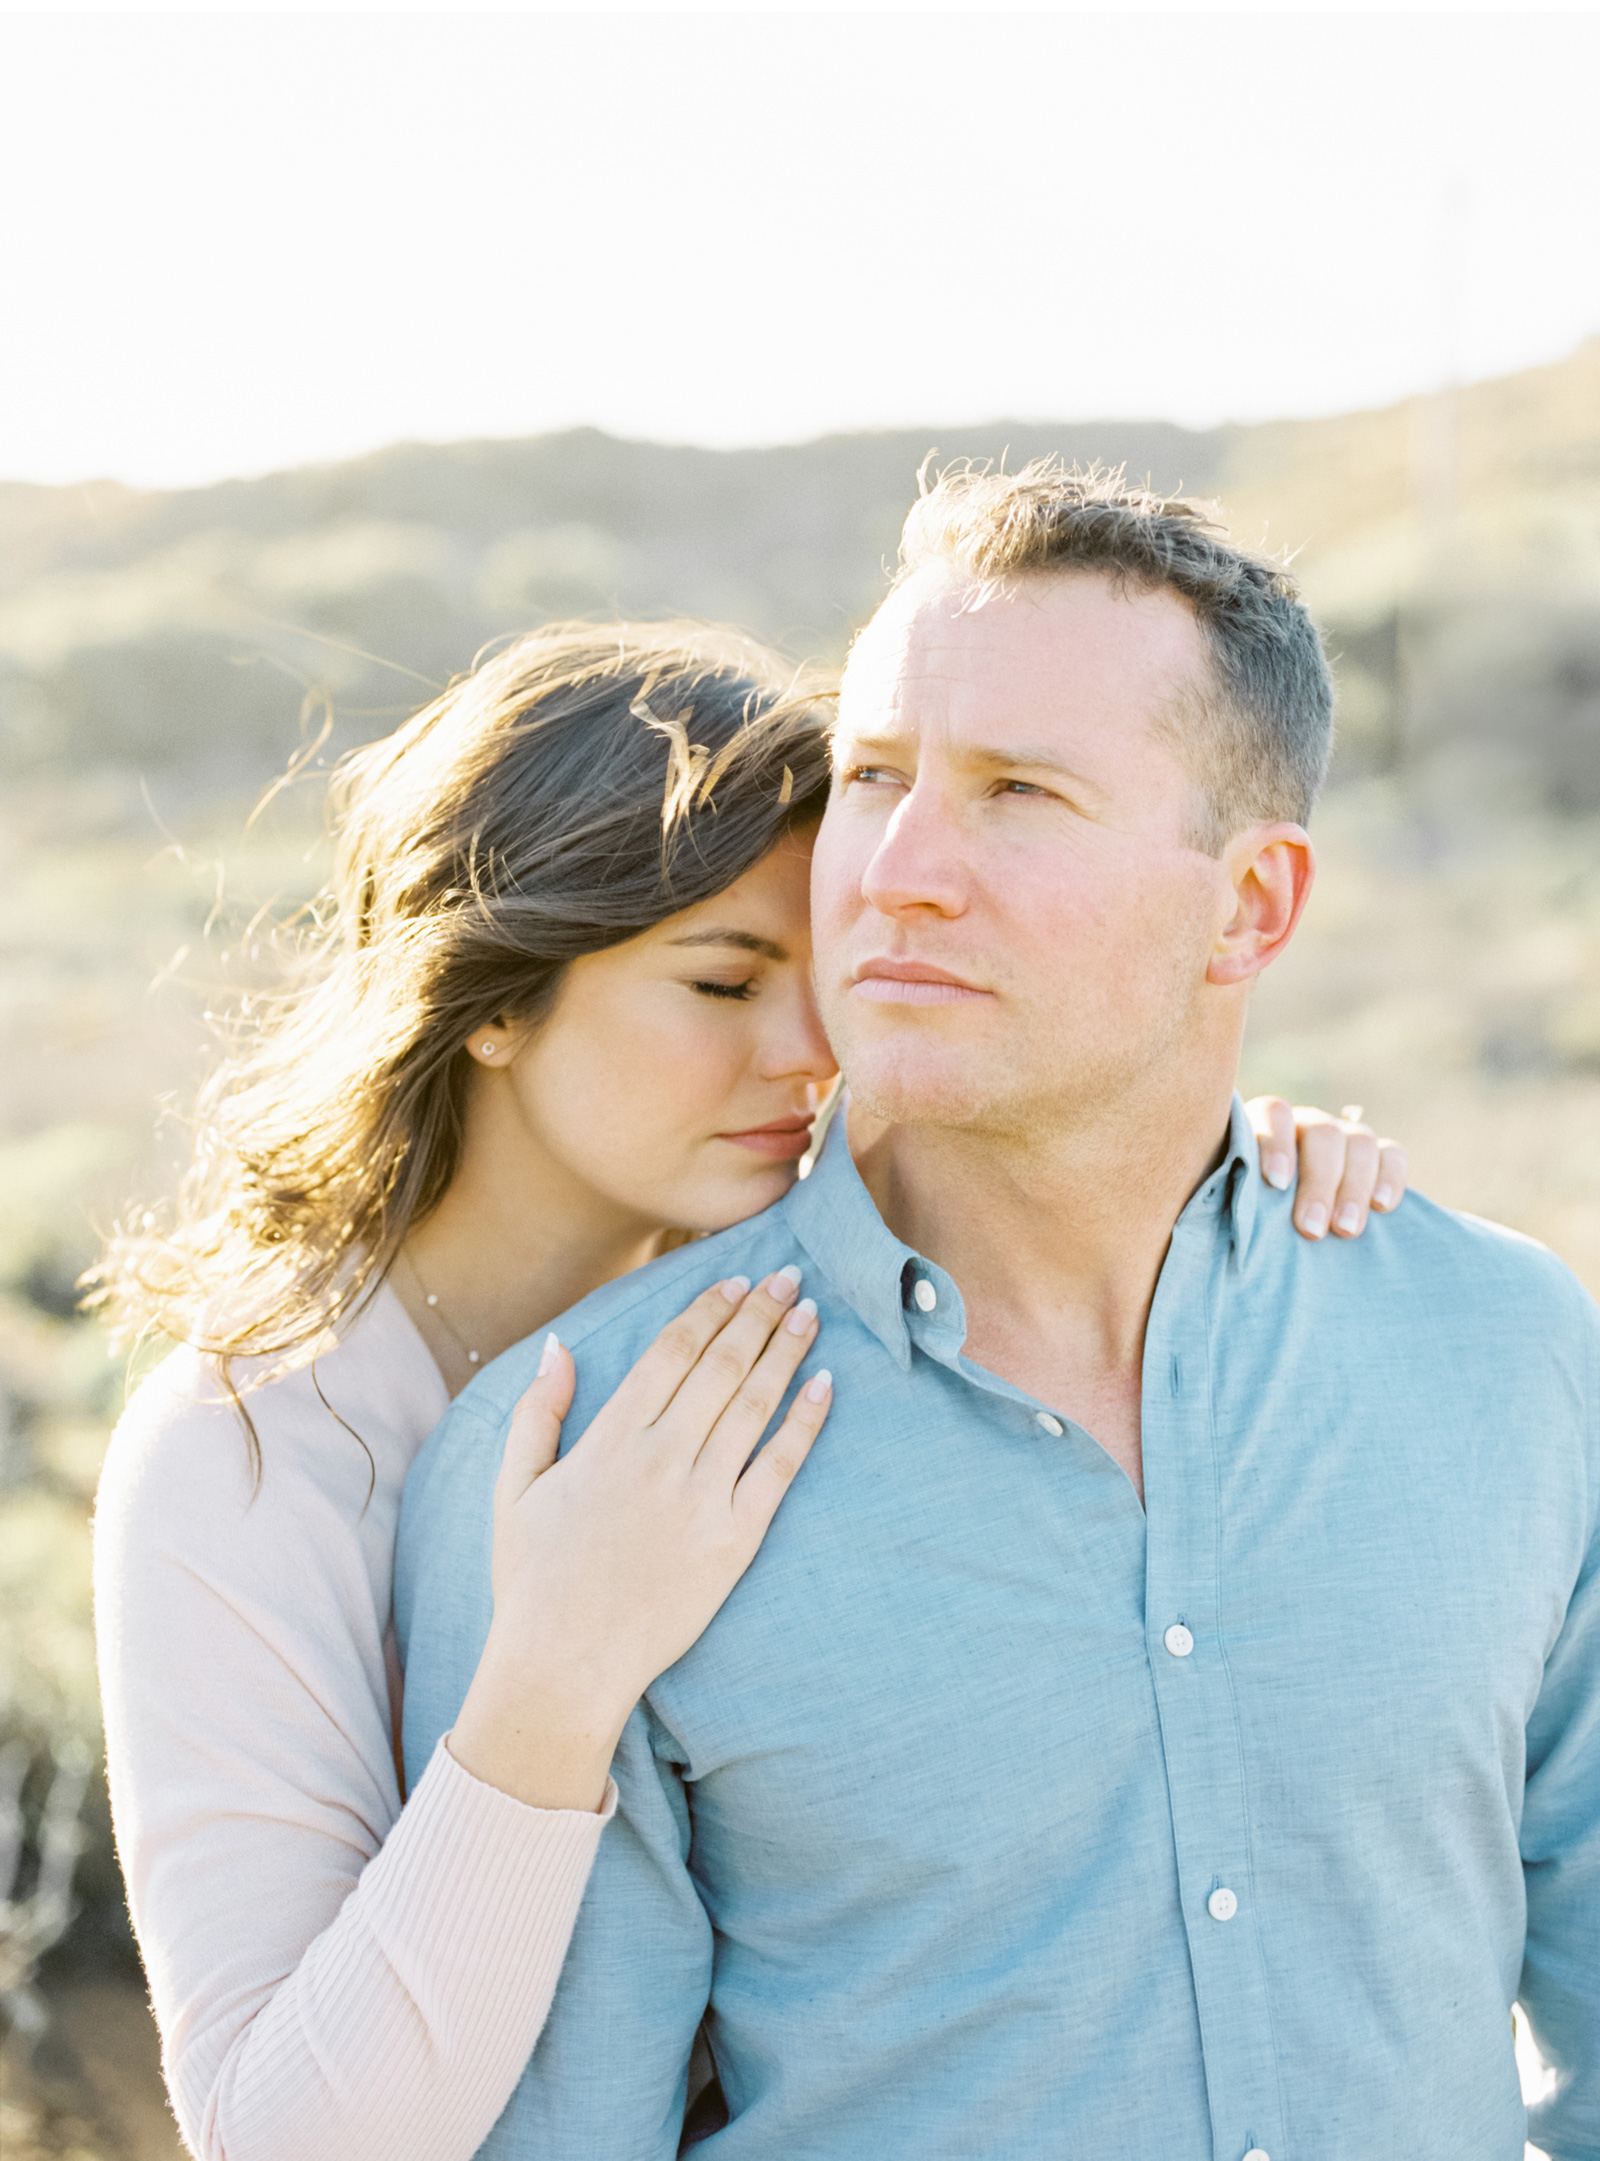 Natalie-Schutt-Photography-Malibu-Engagements-Malibu-Wedding-Beachside-Wedding-Fine-Art-Wedding-Photography-Southern-California-Brides_09.jpg